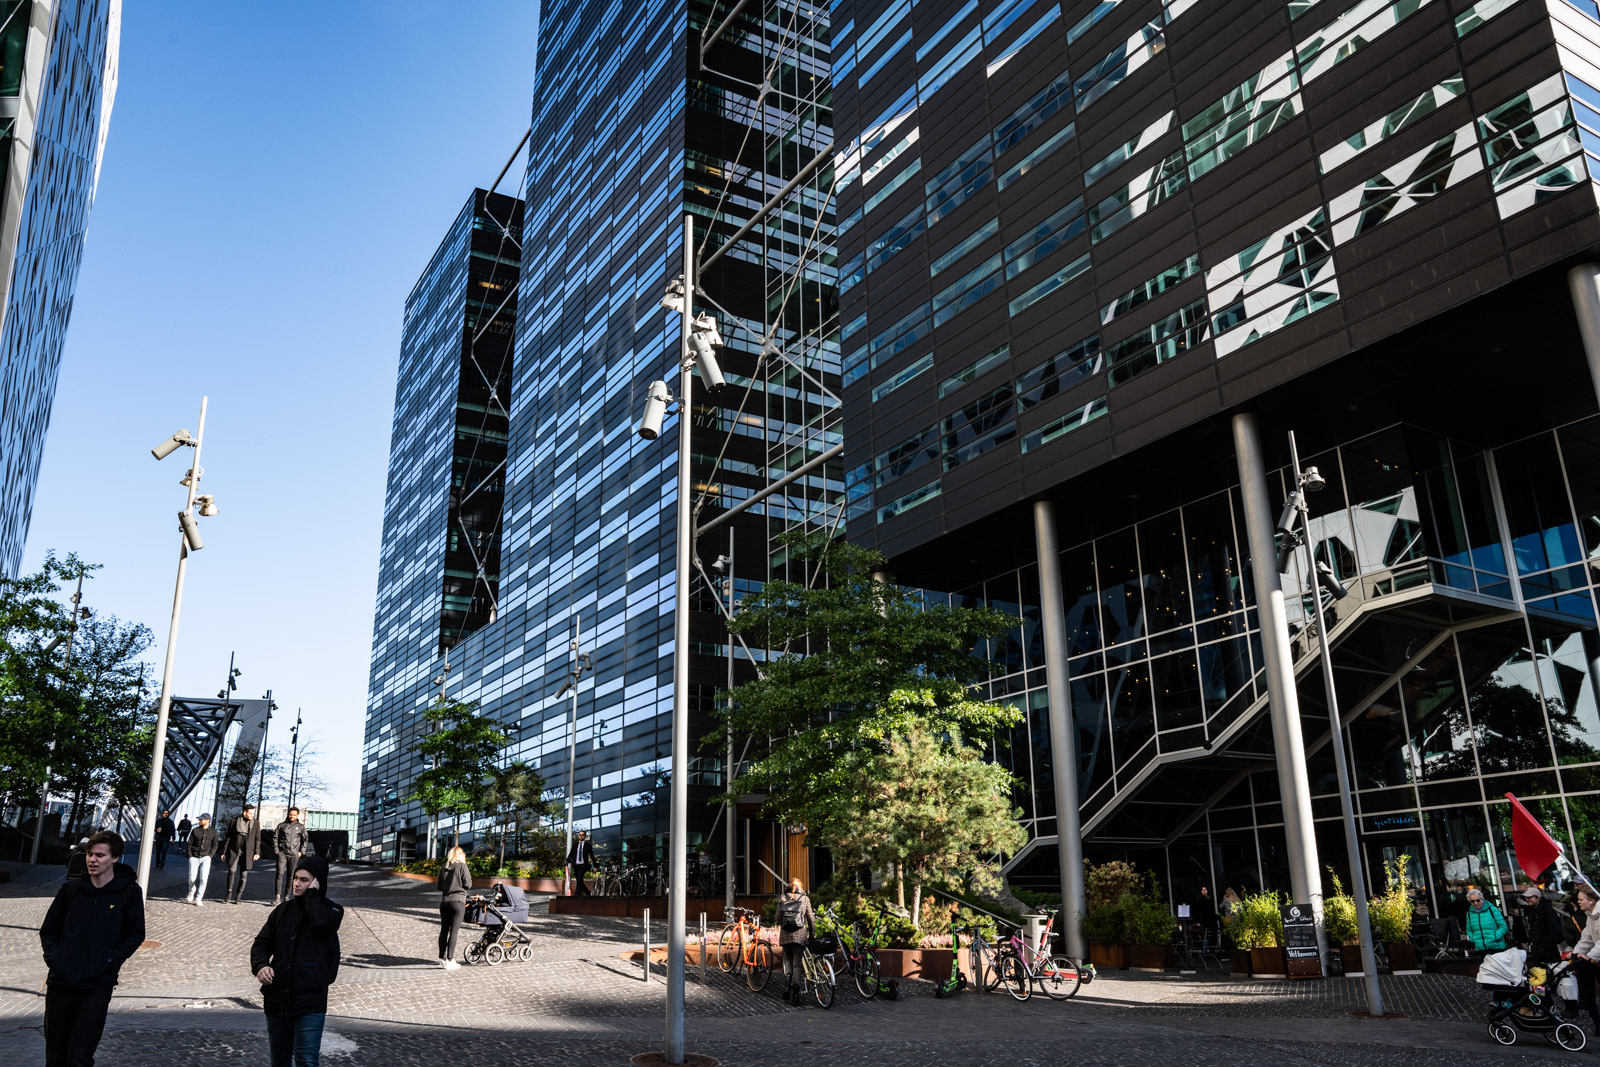 Exterior image of the offices in barcode area Oslo